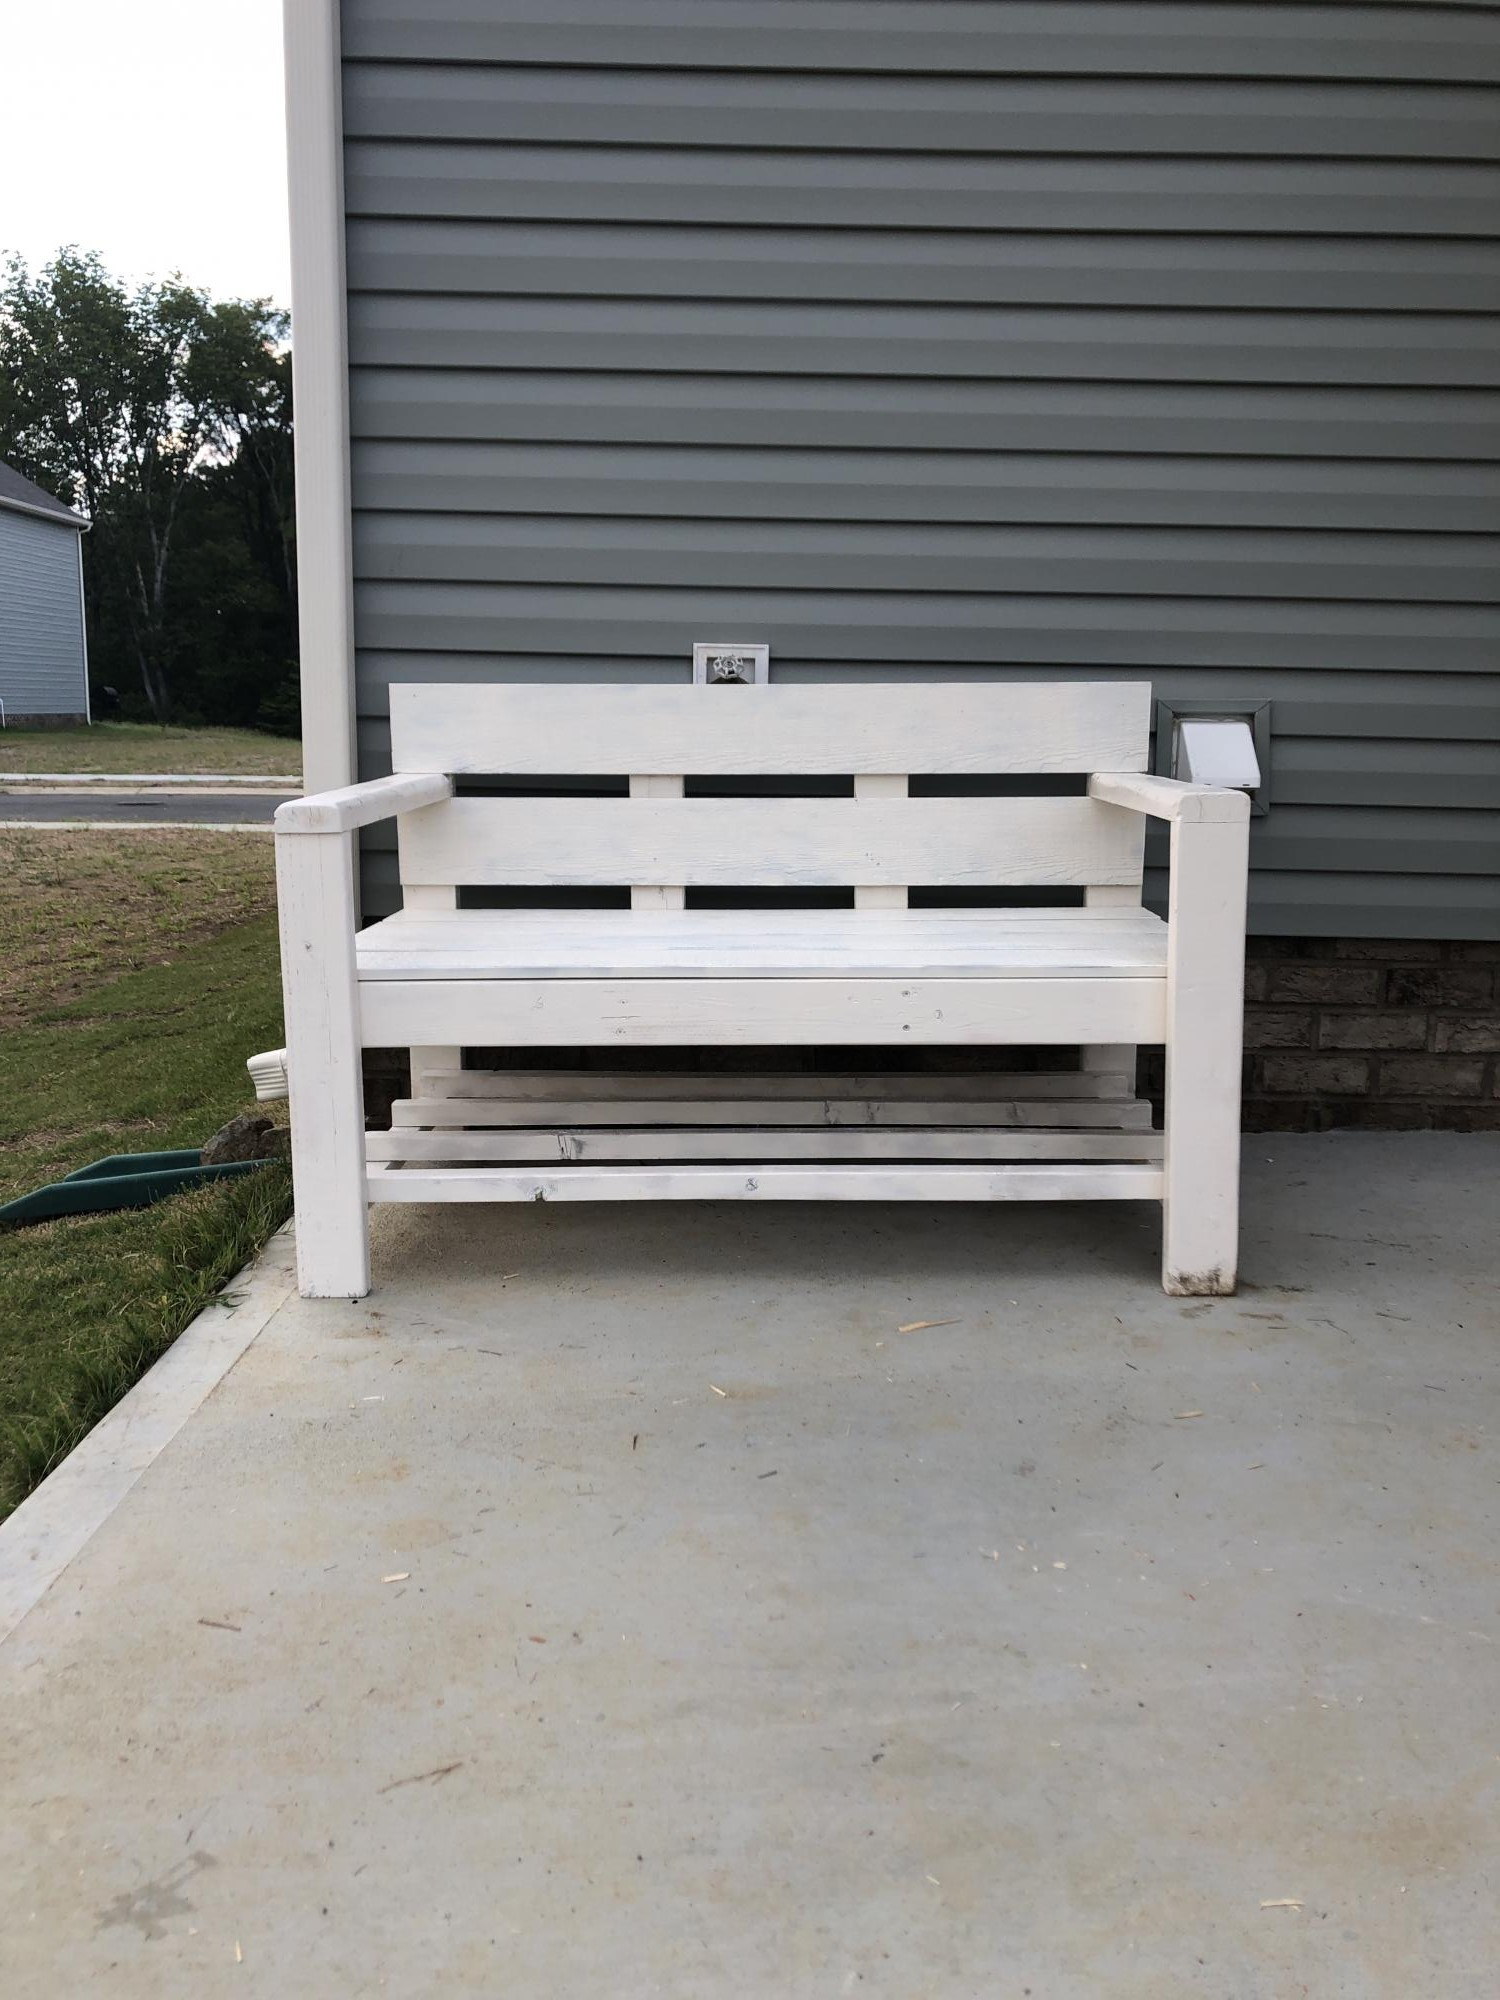 Strange Modified Modern Park Bench Ana White Onthecornerstone Fun Painted Chair Ideas Images Onthecornerstoneorg